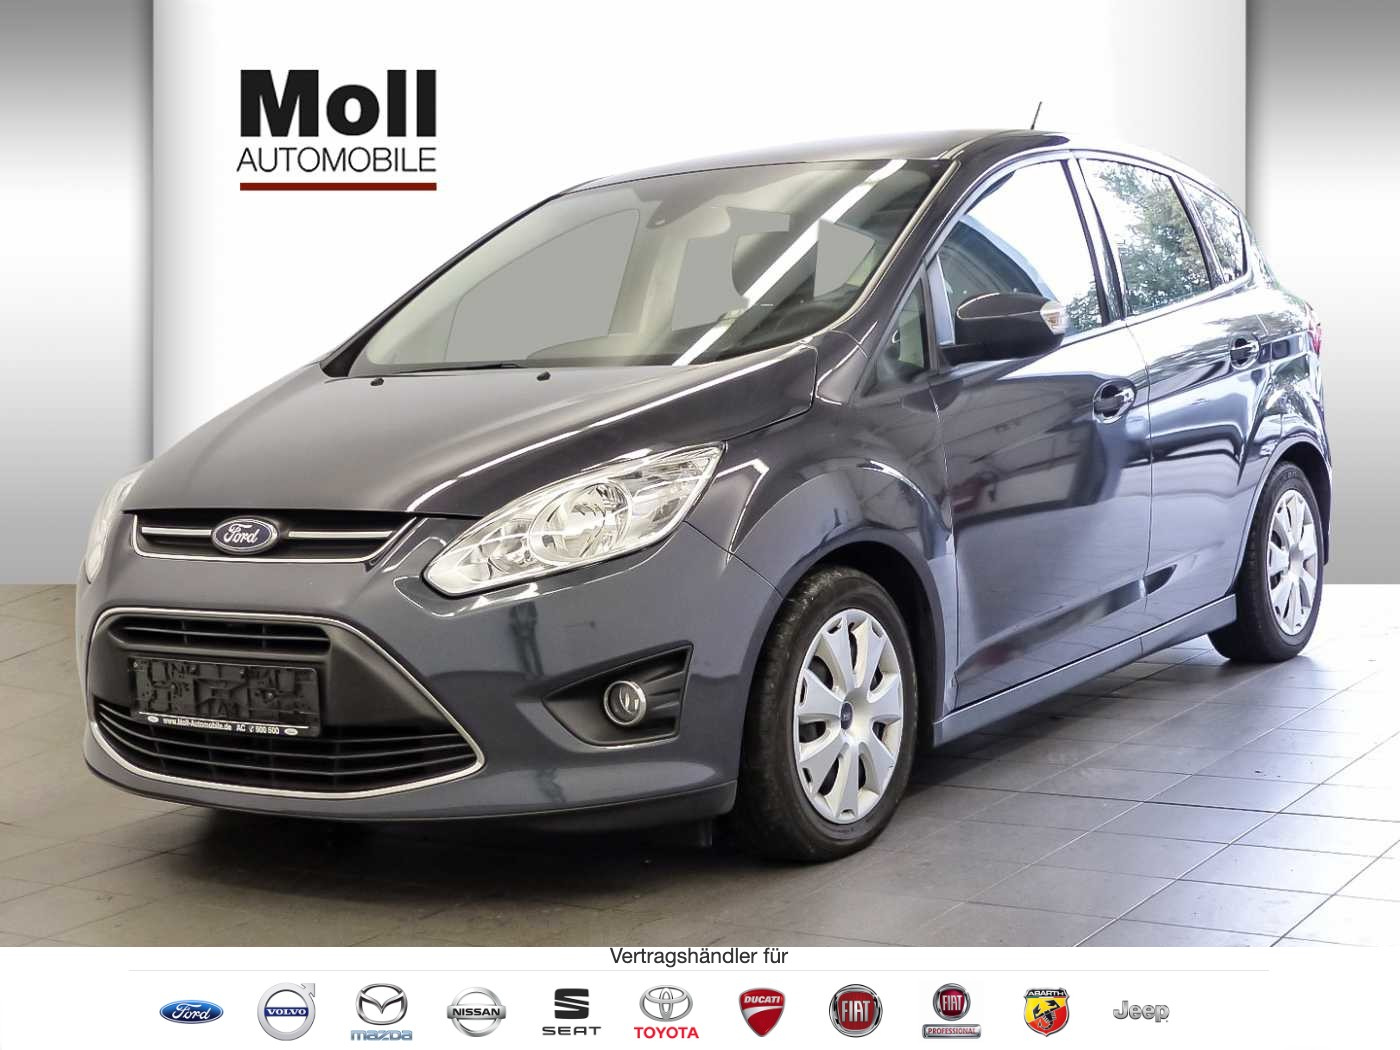 Ford C-Max 1.0 EcoBoost Trend 125PS, Navigation, AHK, PDC, Jahr 2013, Benzin